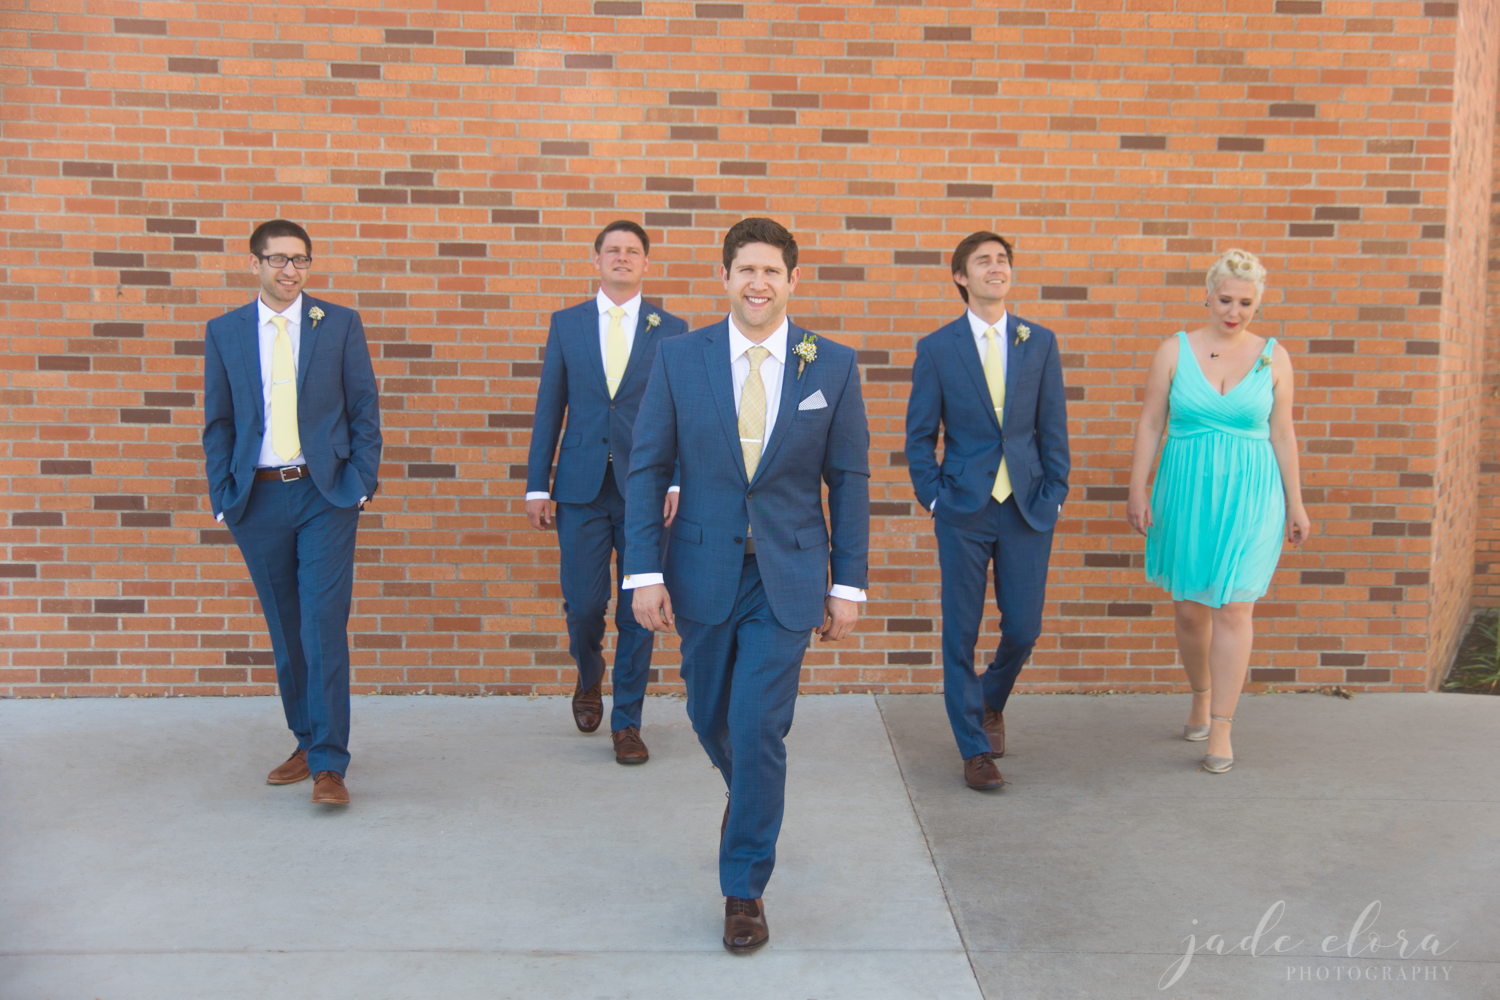 Glendale-Wedding-Photographer-Blog-Jade-Elora-458-2.jpg